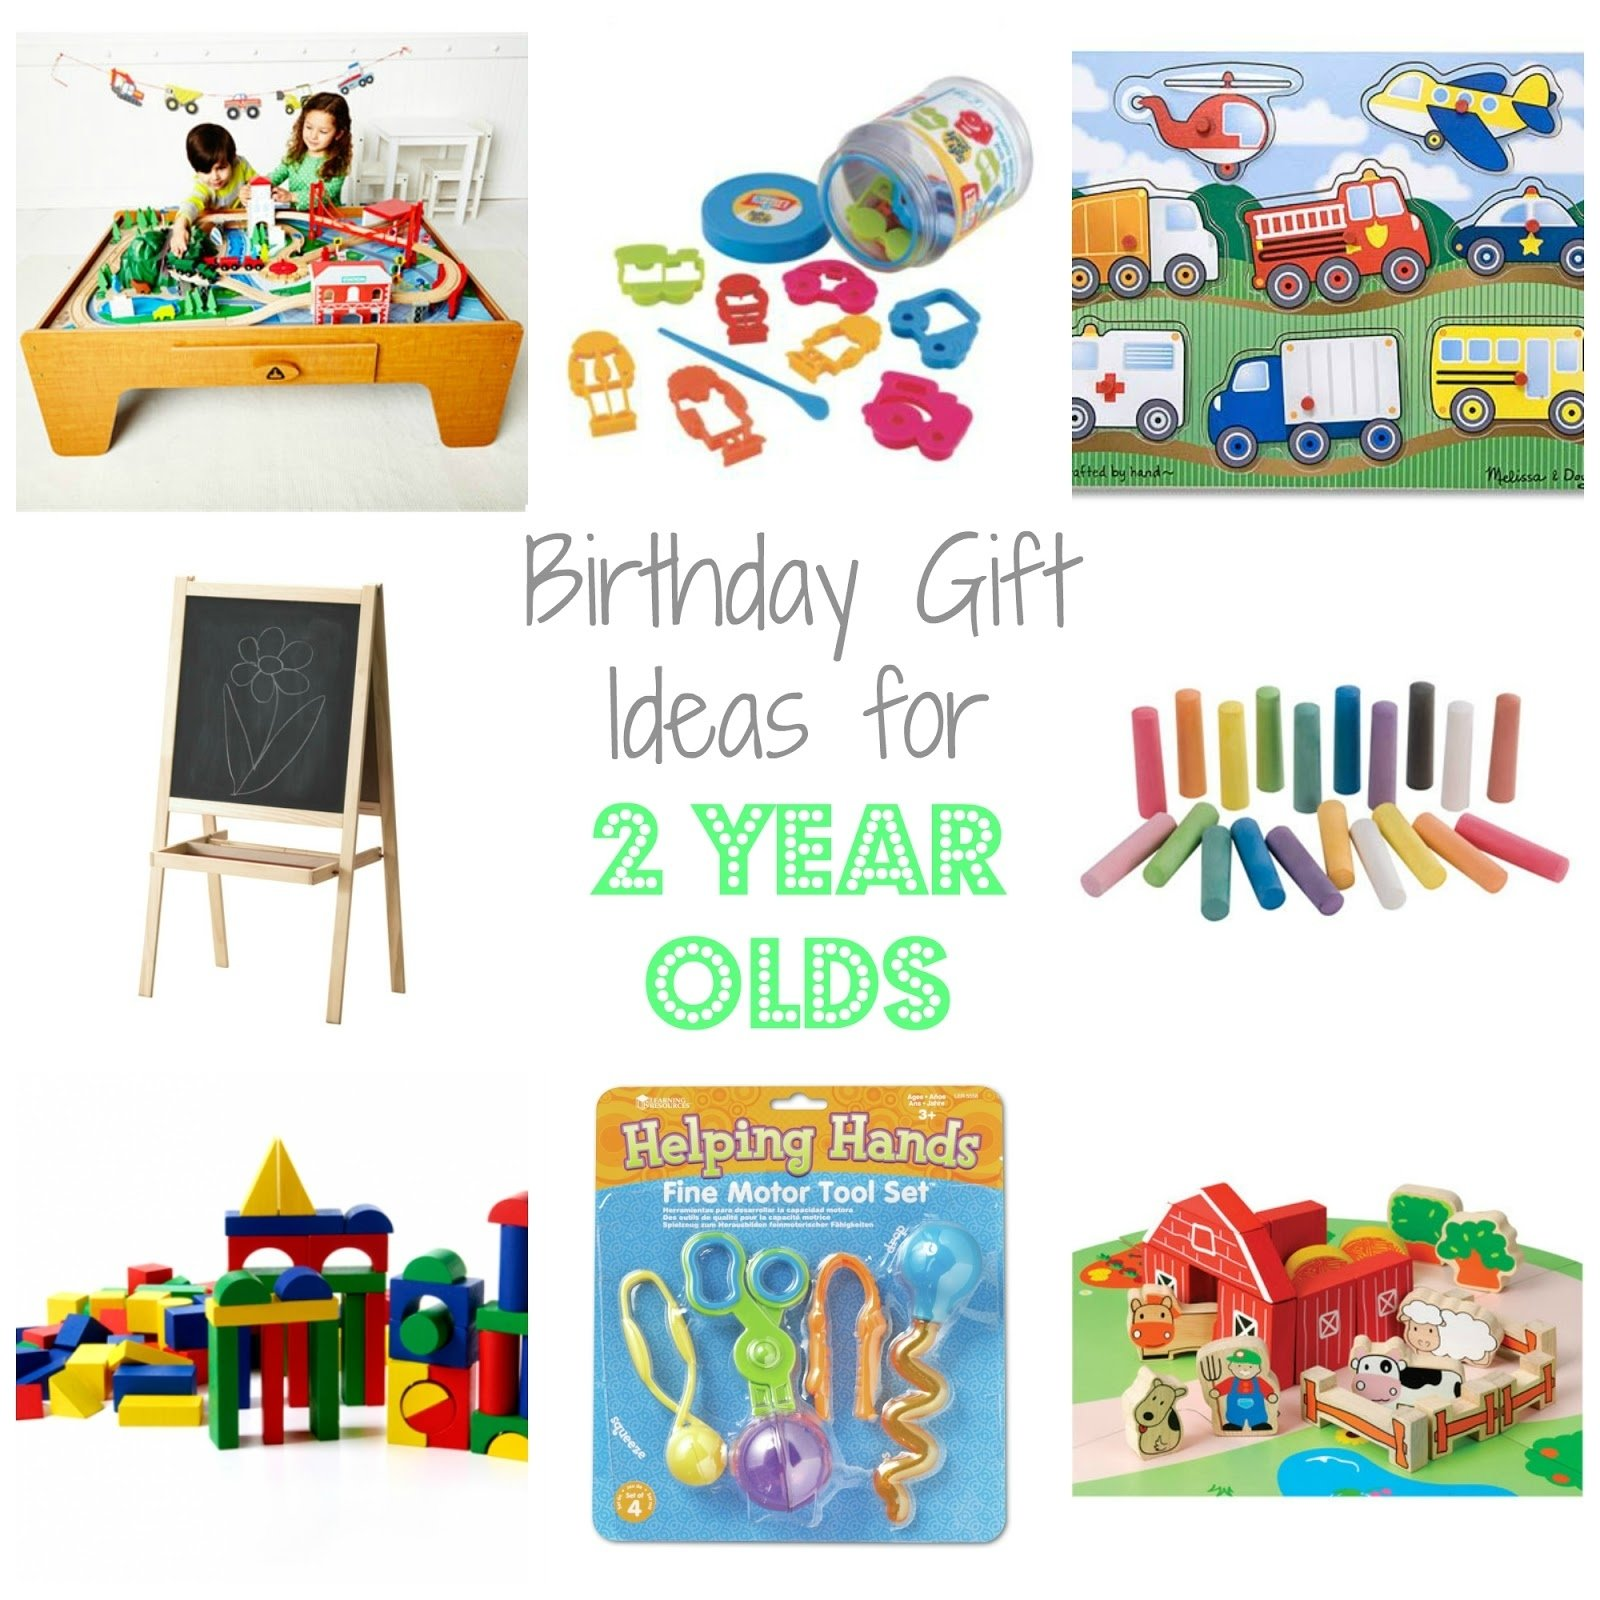 10 Wonderful Two Year Old Gift Ideas birthday gift ideas for two year olds oh little one sweet 4 2020